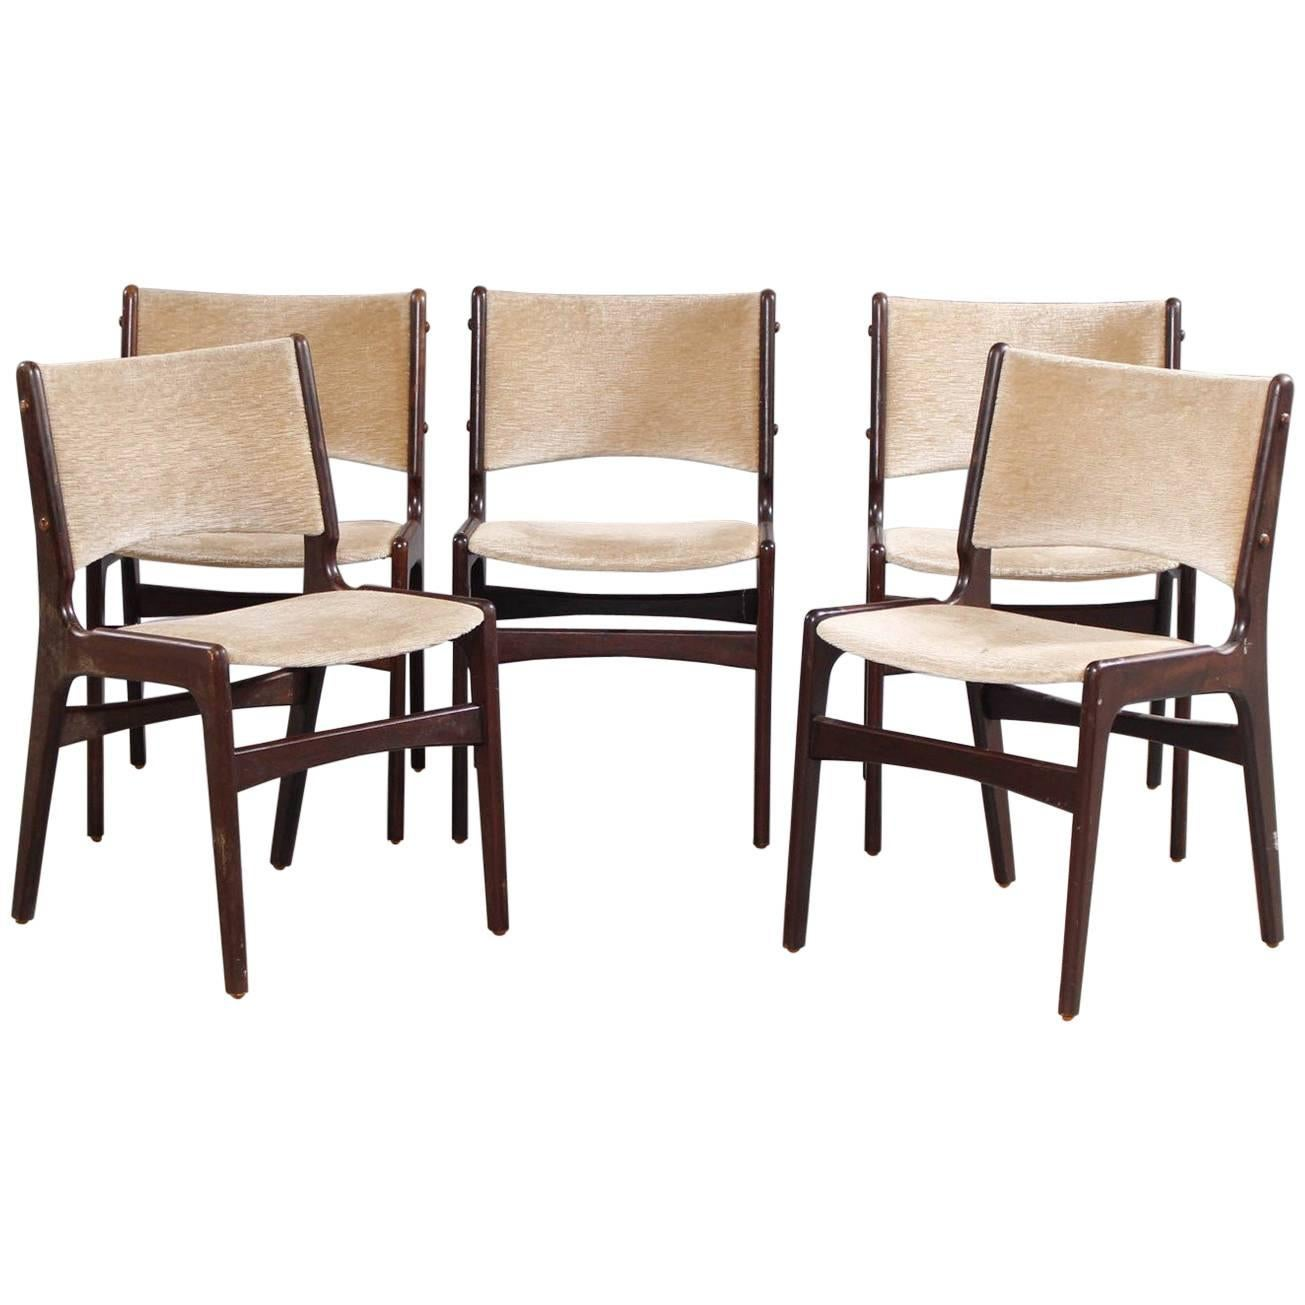 1950s Five Erik Buch Dining Chairs In Solid Teak And Grey Velvet 1